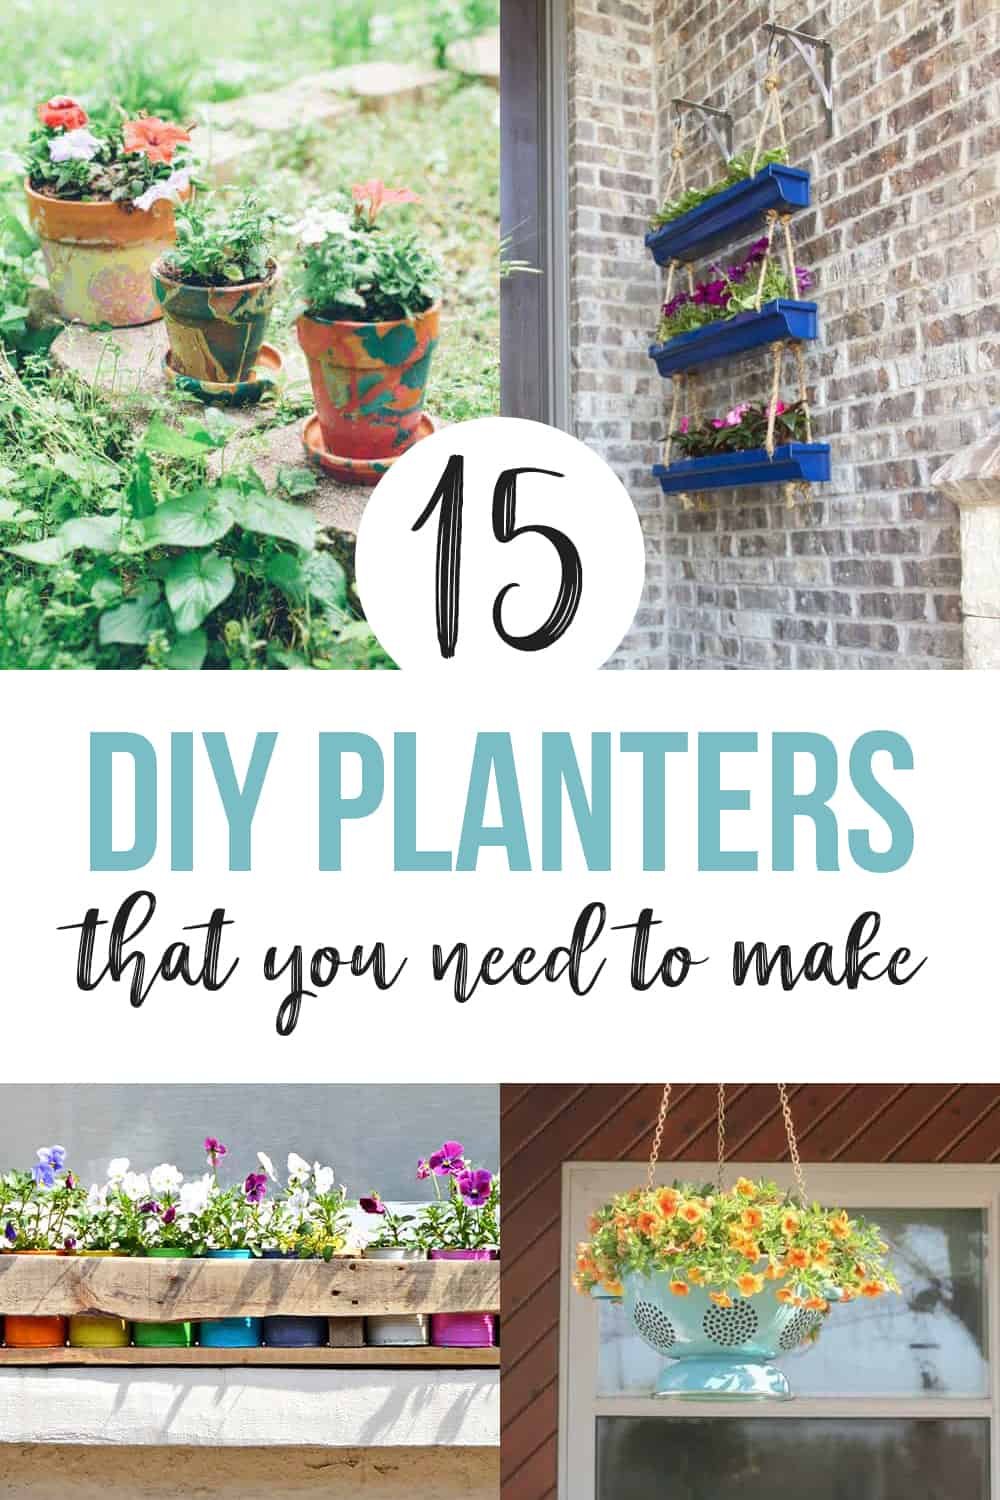 15 Creative Ideas for Plant Containers (Simple DIY Outdoor ... on backyard urn ideas, backyard patio ideas, cheap retaining wall ideas, backyard rose ideas, diy flower garden design ideas, backyard fence ideas, backyard gift ideas, tropical landscape patio design ideas, backyard outdoor ideas, backyard wood ideas, backyard landscaping ideas, back yard landscaping design ideas, backyard shelf ideas, small backyard ideas, outdoor flower pot decorating ideas, backyard plant ideas, backyard statue ideas, backyard bed ideas, backyard light ideas, backyard flowers ideas,